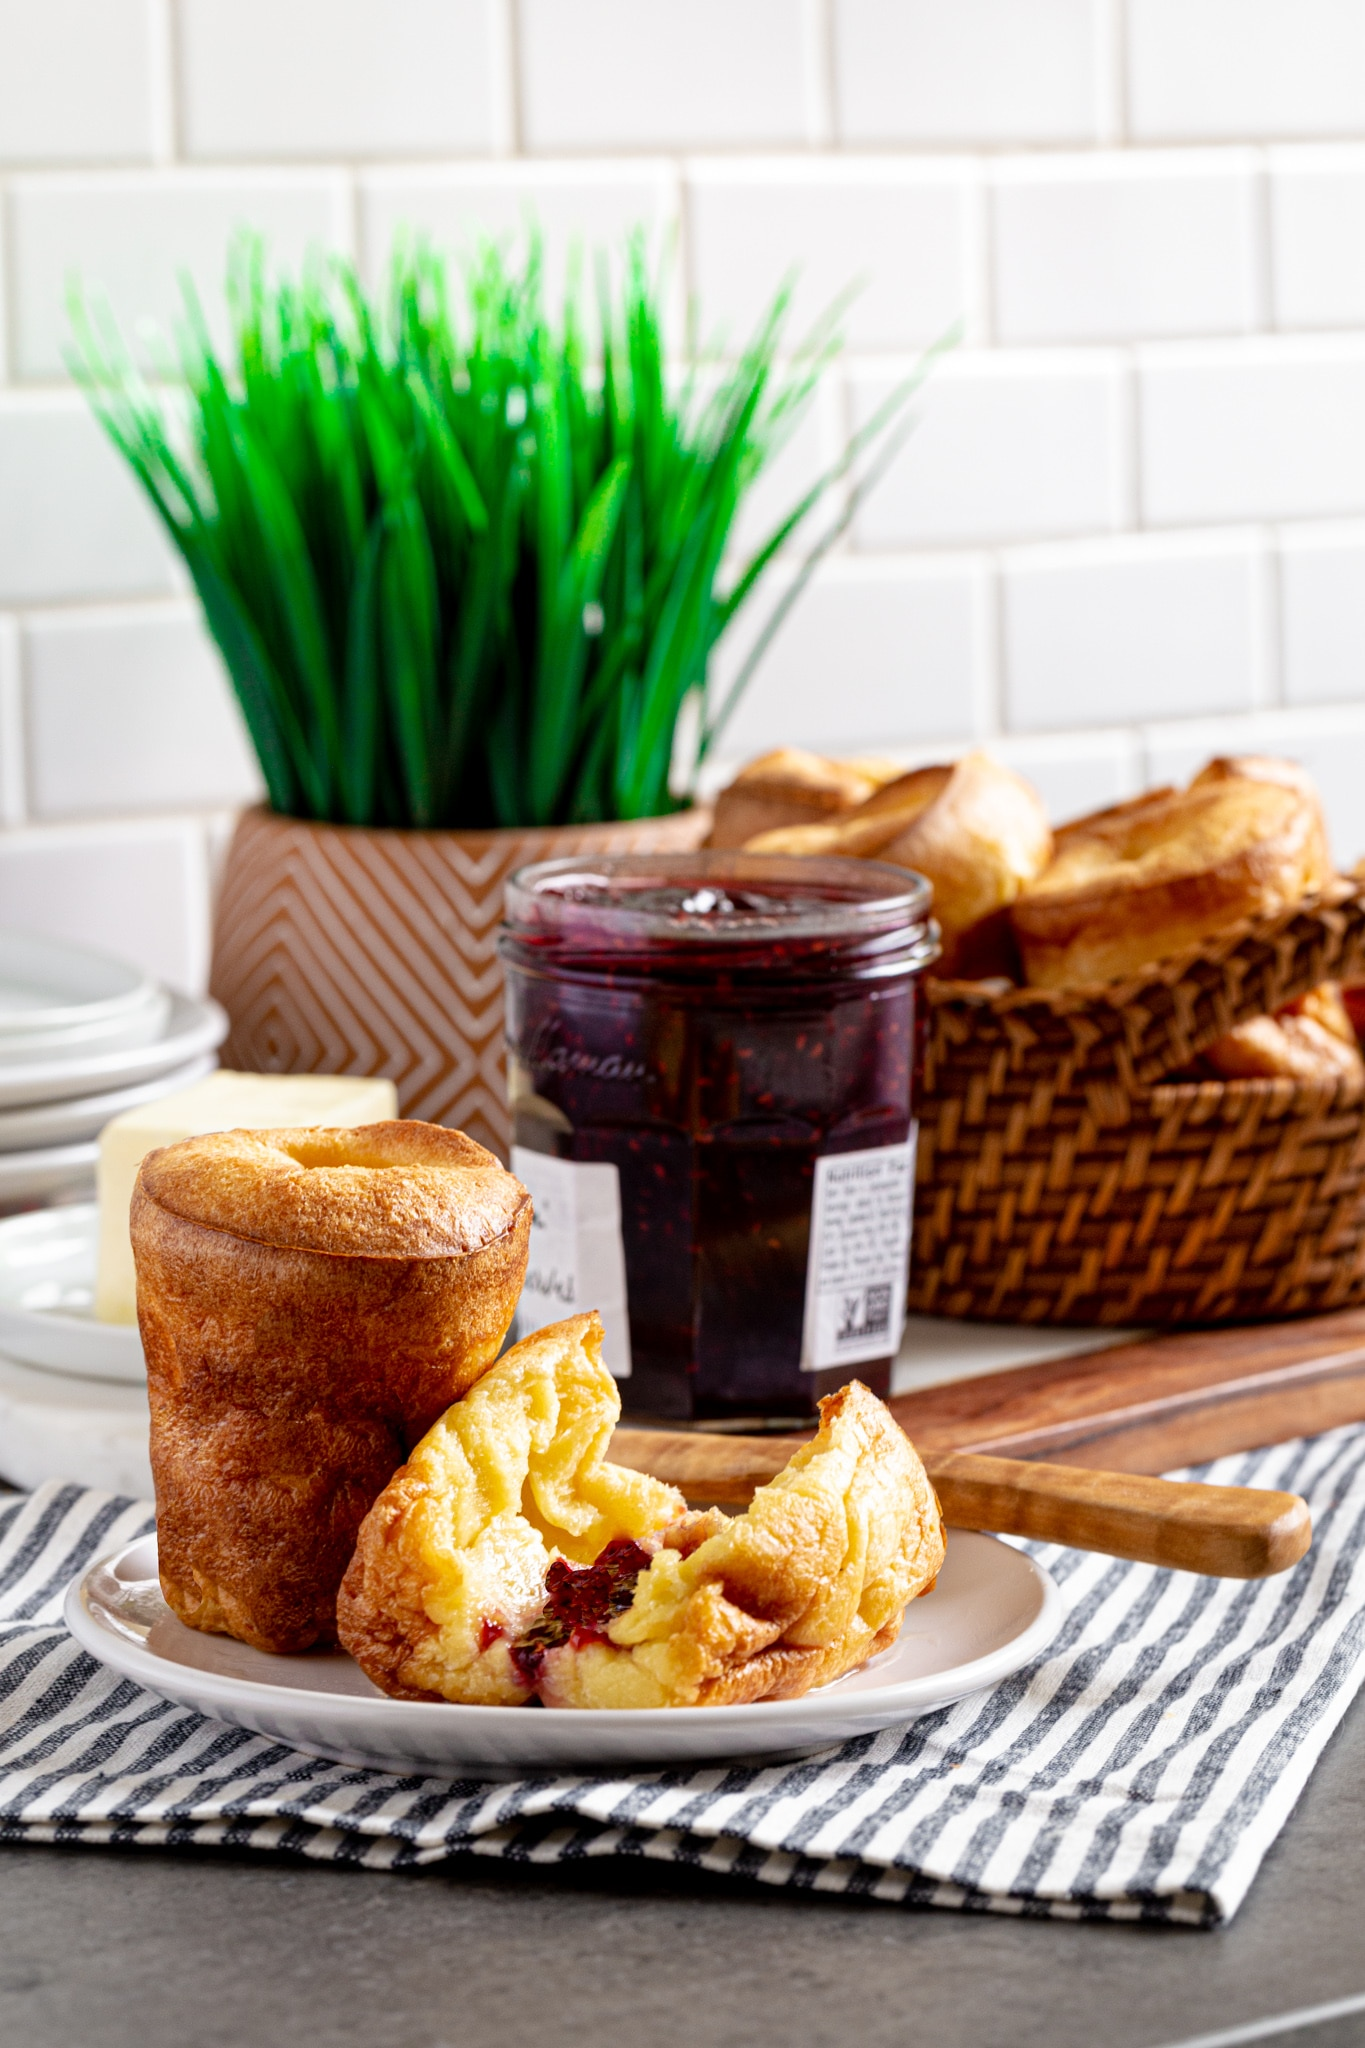 Two popovers on a plate next to a jar of jam an wicker basket with popovers.